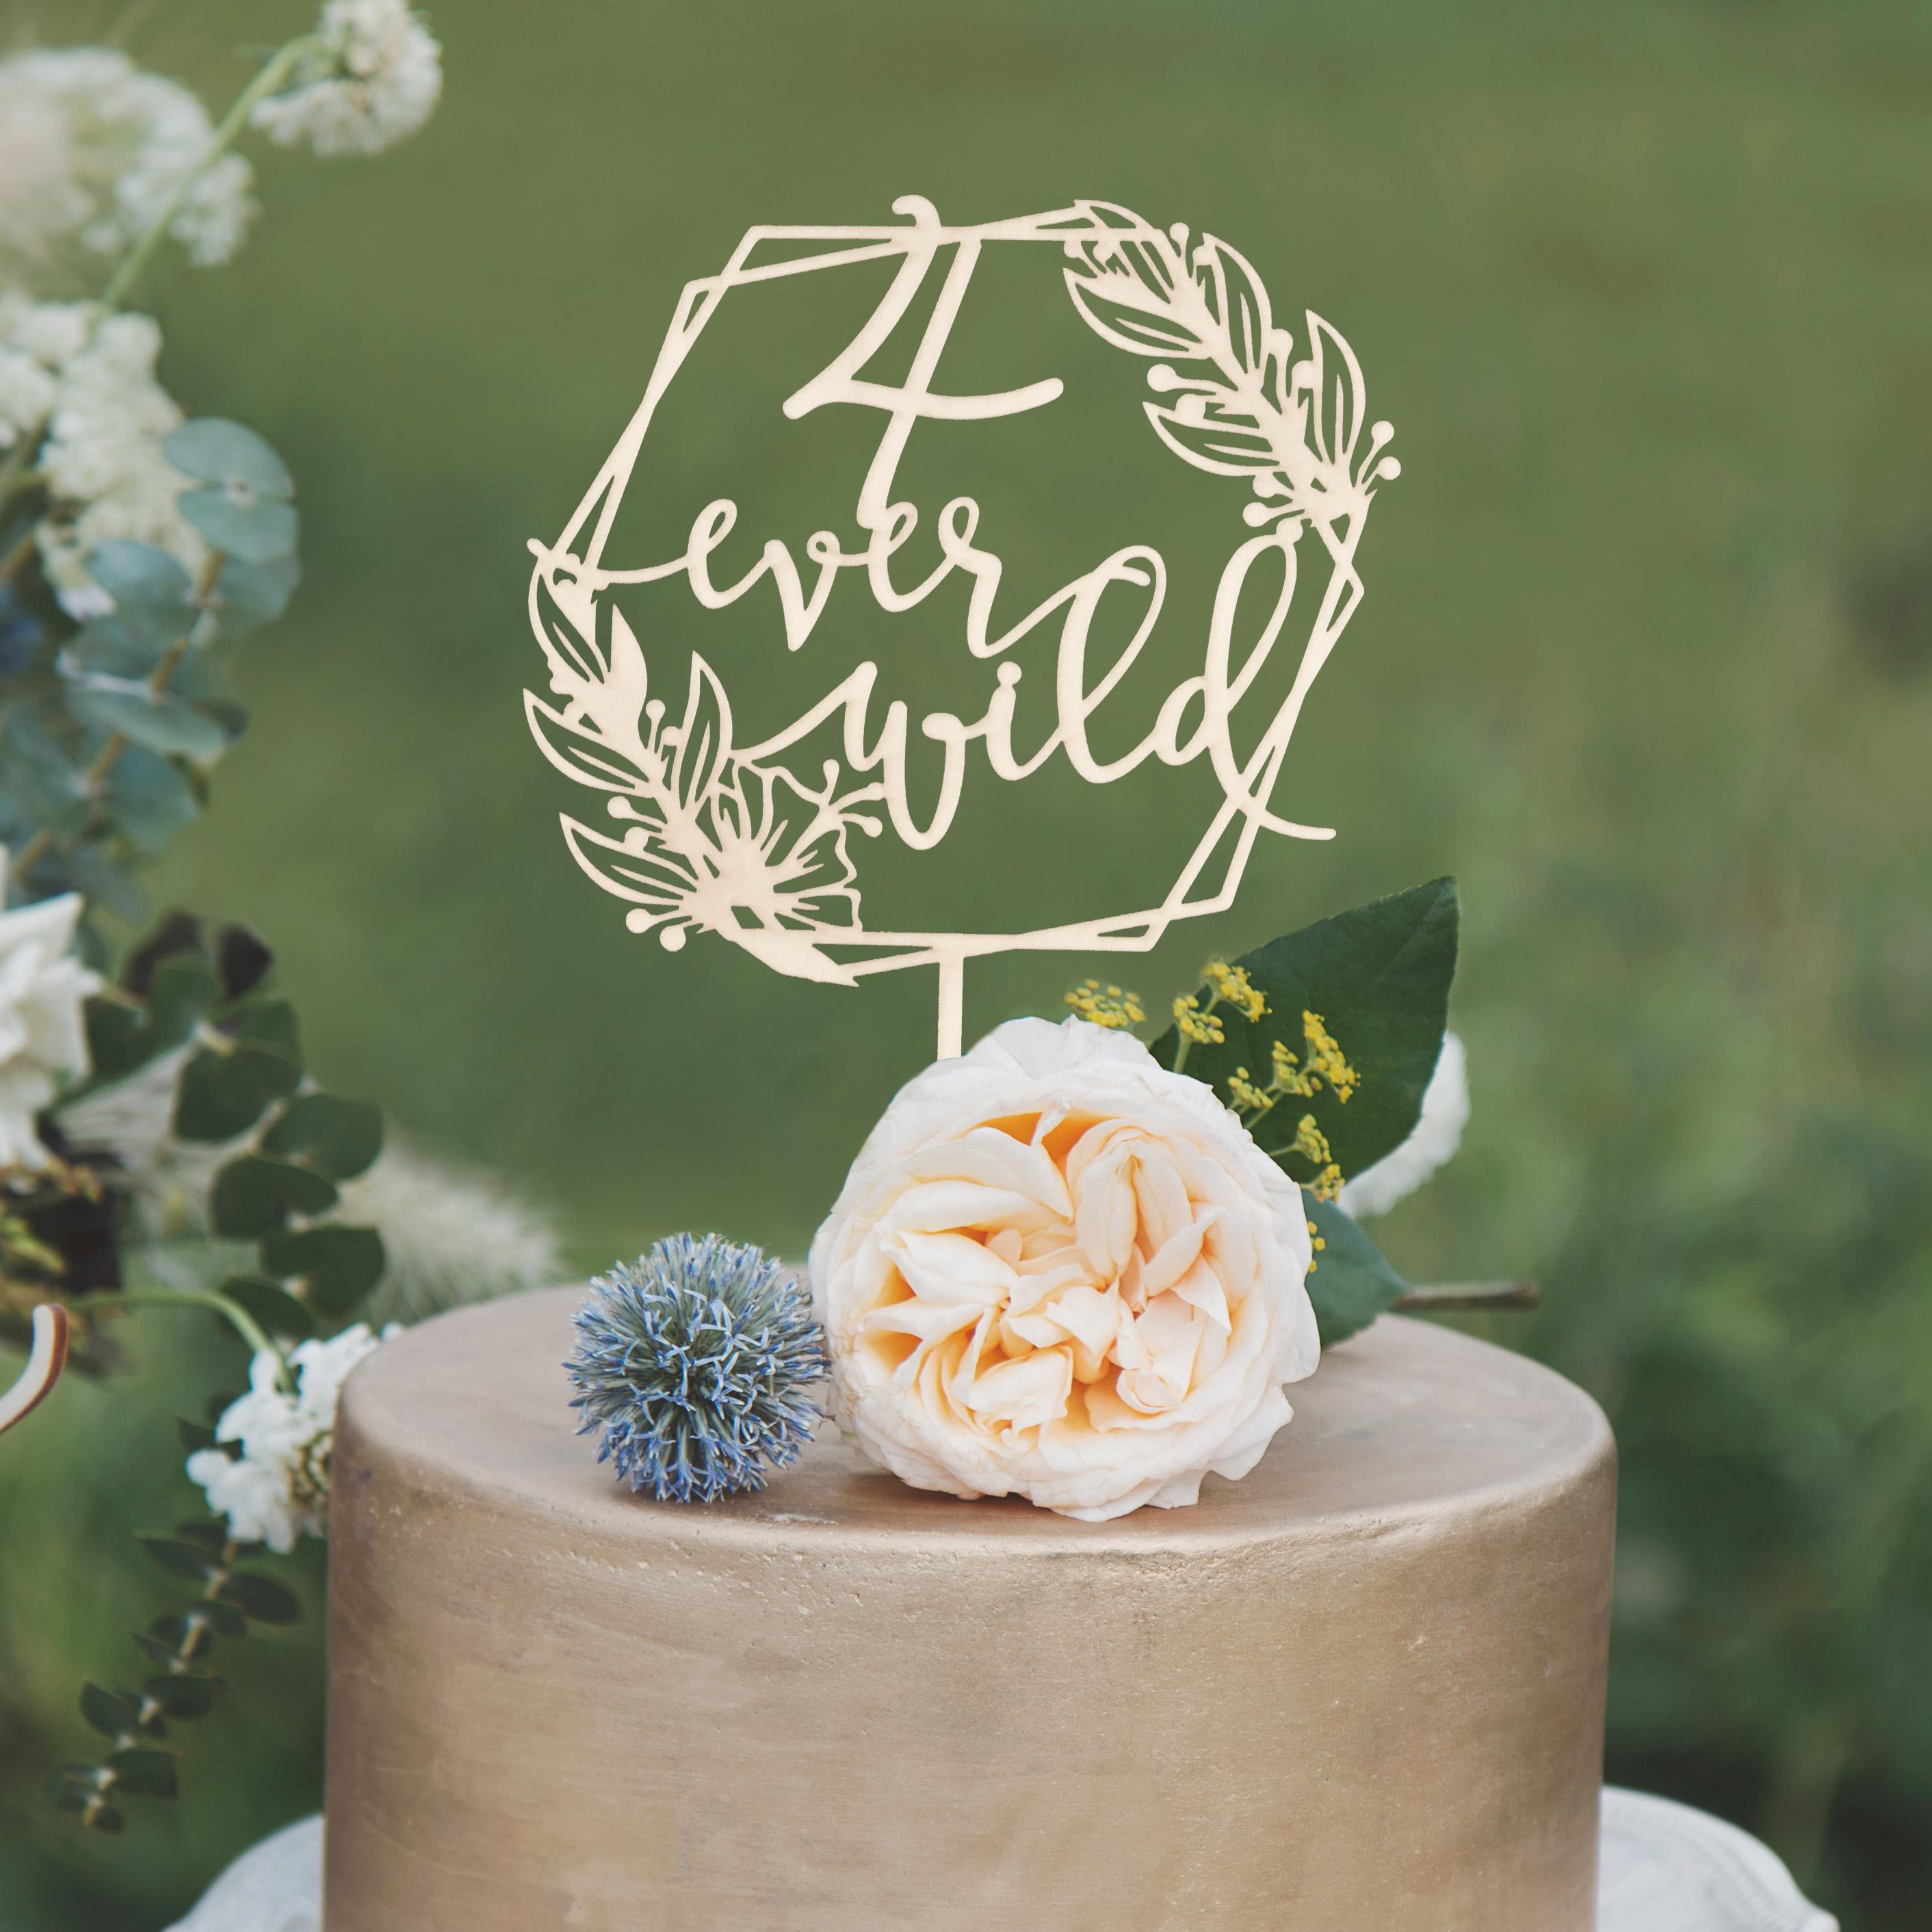 4 Ever Wild Birthday Cake Topper by Thistle and Lace